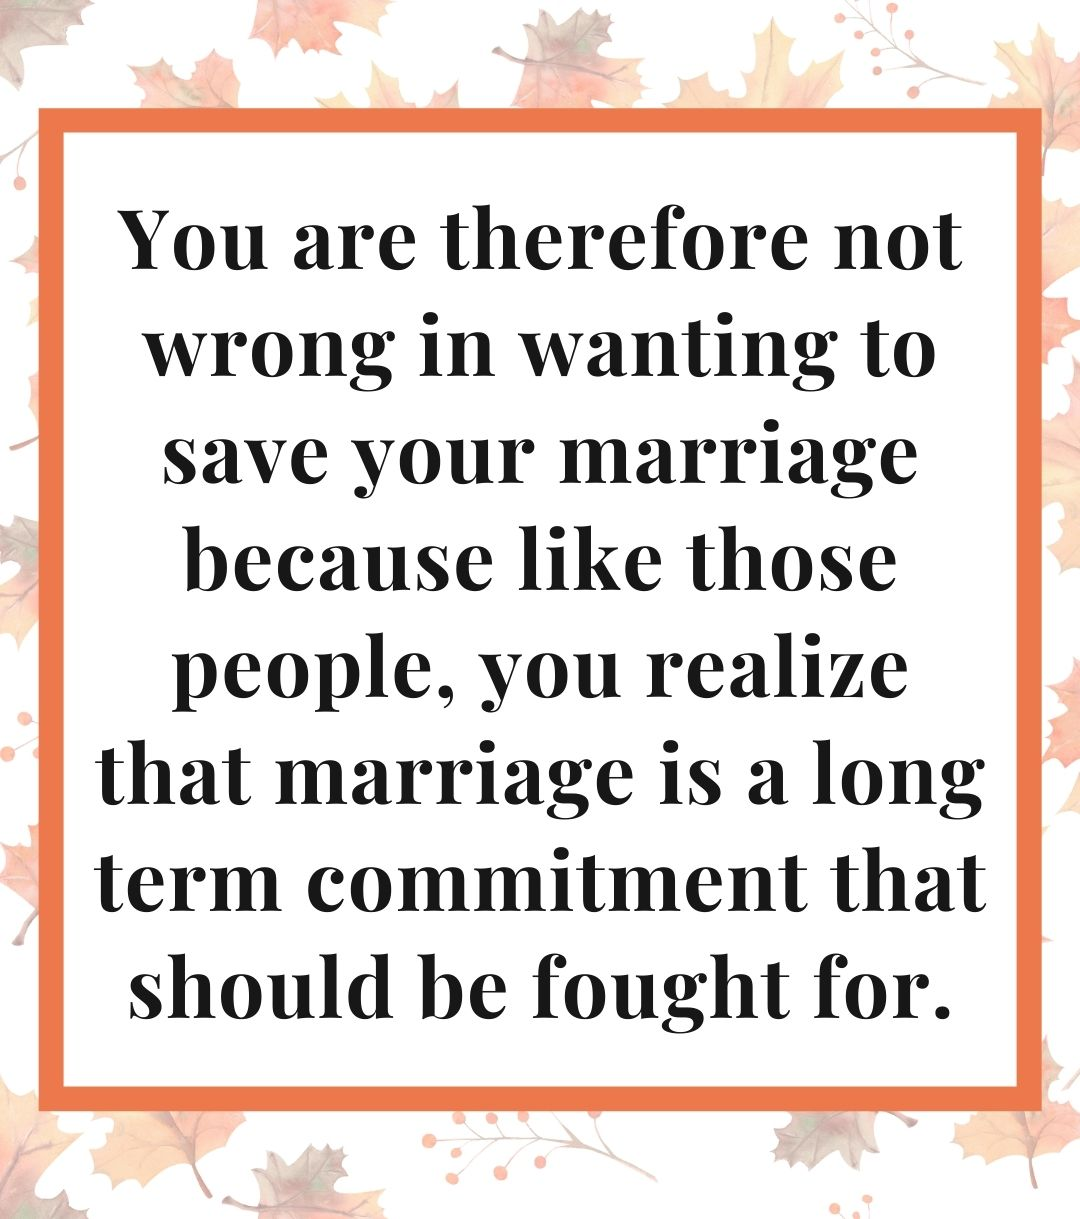 You are therefore not wrong in wanting to save your marriage because like those people, you realize that marriage is a long term commitment that should be fought for.